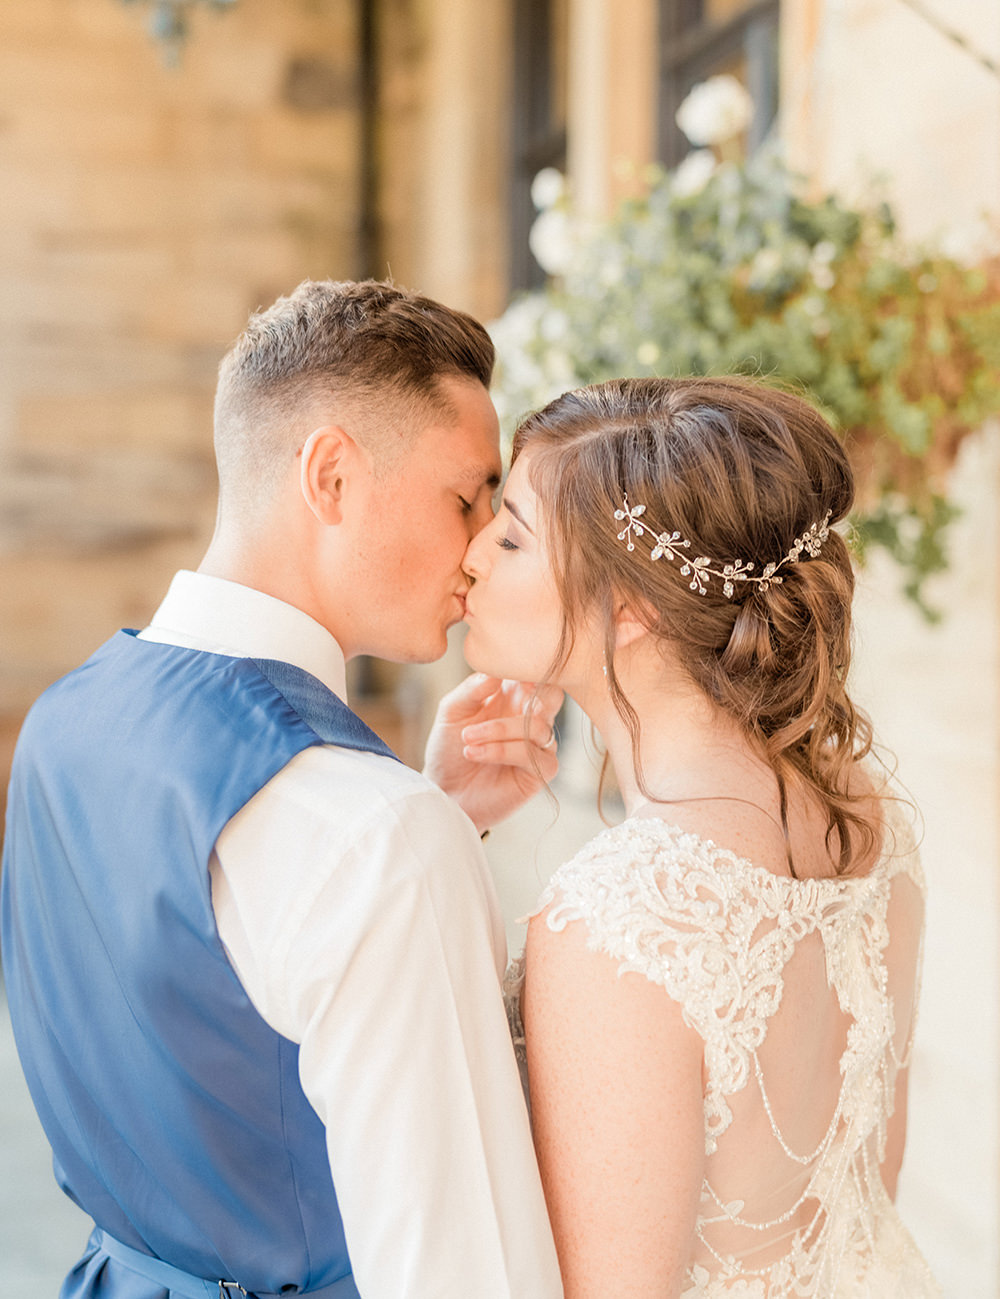 Dress Gown Bride Bridal Lace Pearl Fit Flare Beamish Hall Wedding Carn Patrick Photography